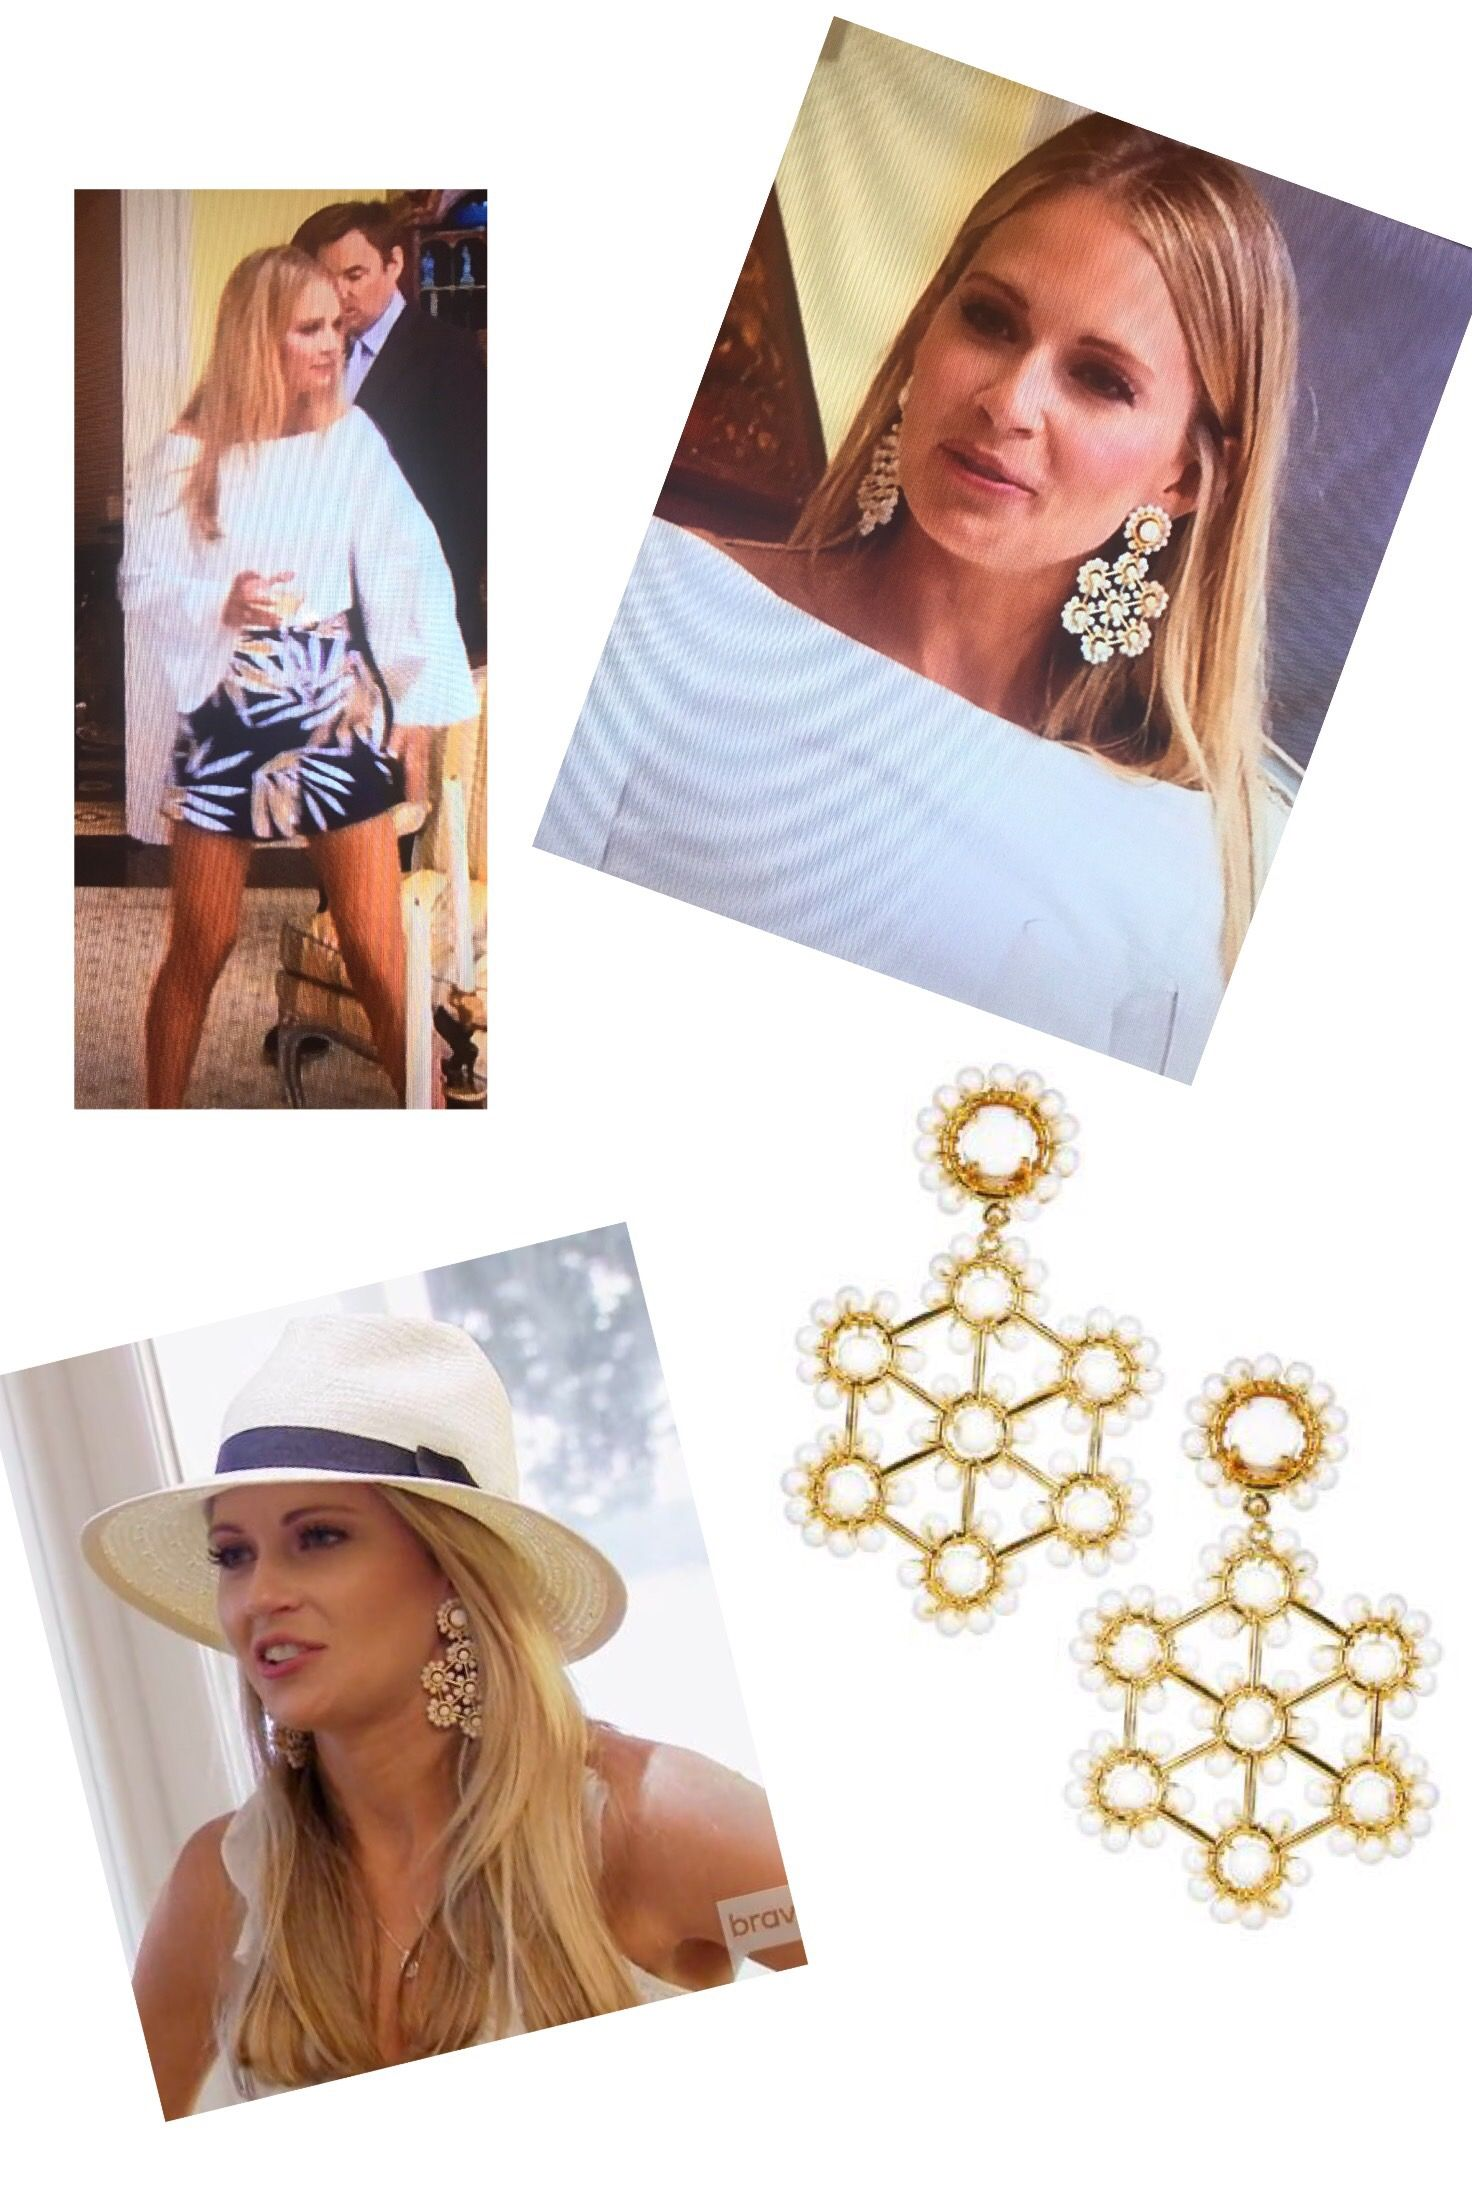 d02e3ab00 Cameran Eubanks' White Lisi Lerch Vivi Earrings http://www.bigblondehair.